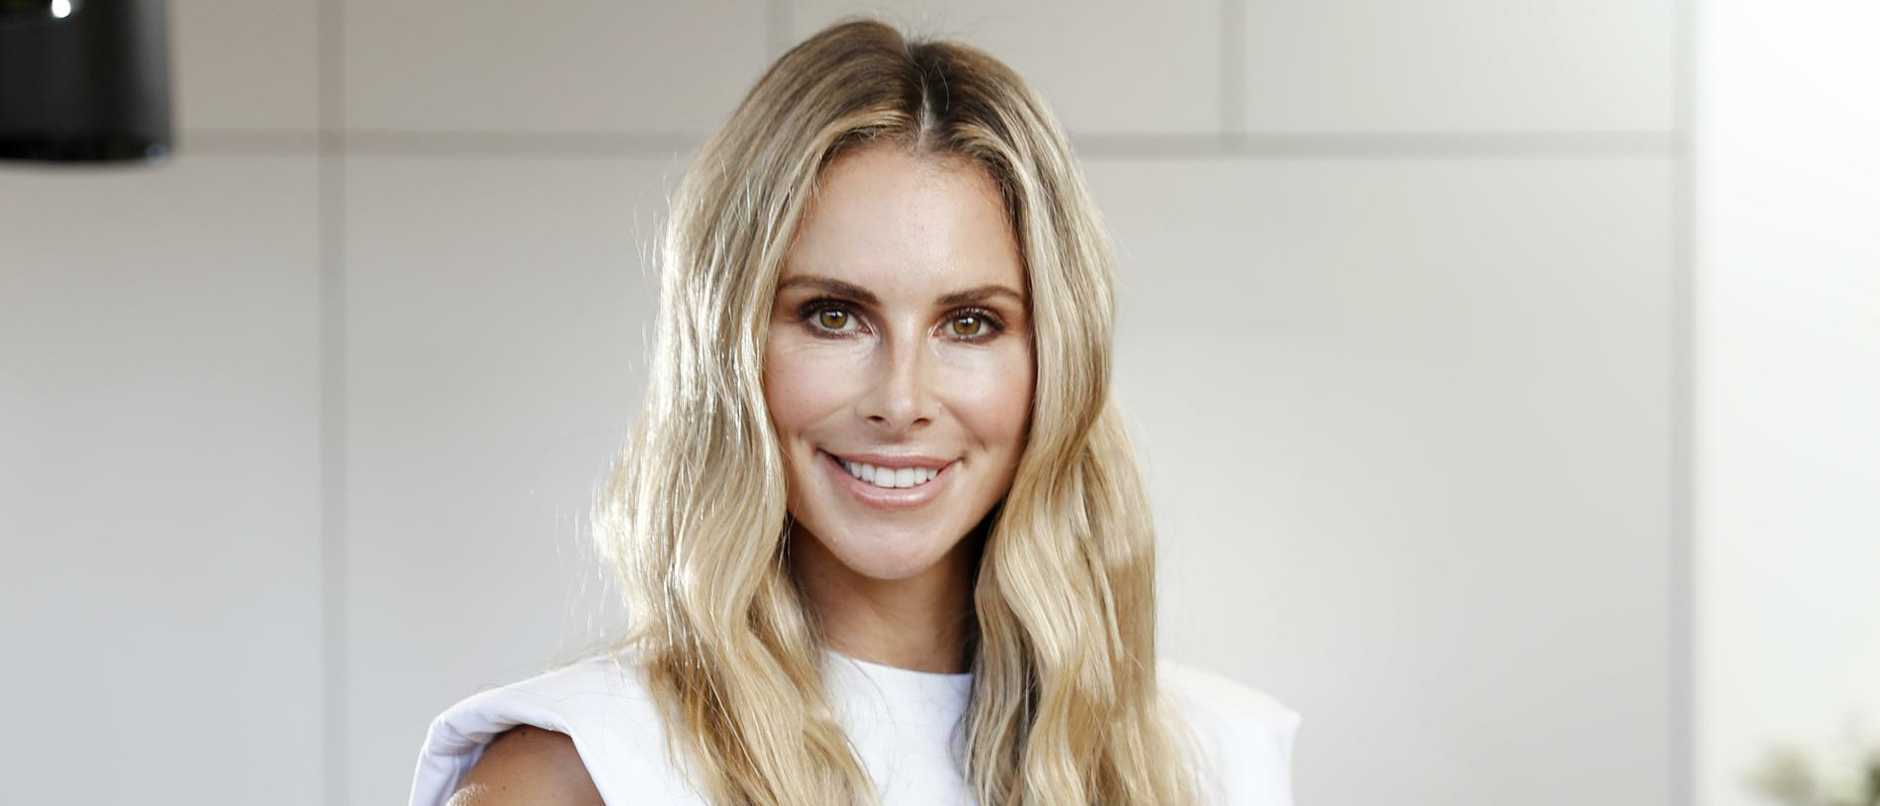 Former ironwoman Candice Warner is fighting fit and pushing herself to the limit on SAS Australia – see what keeps her grounded when at home.